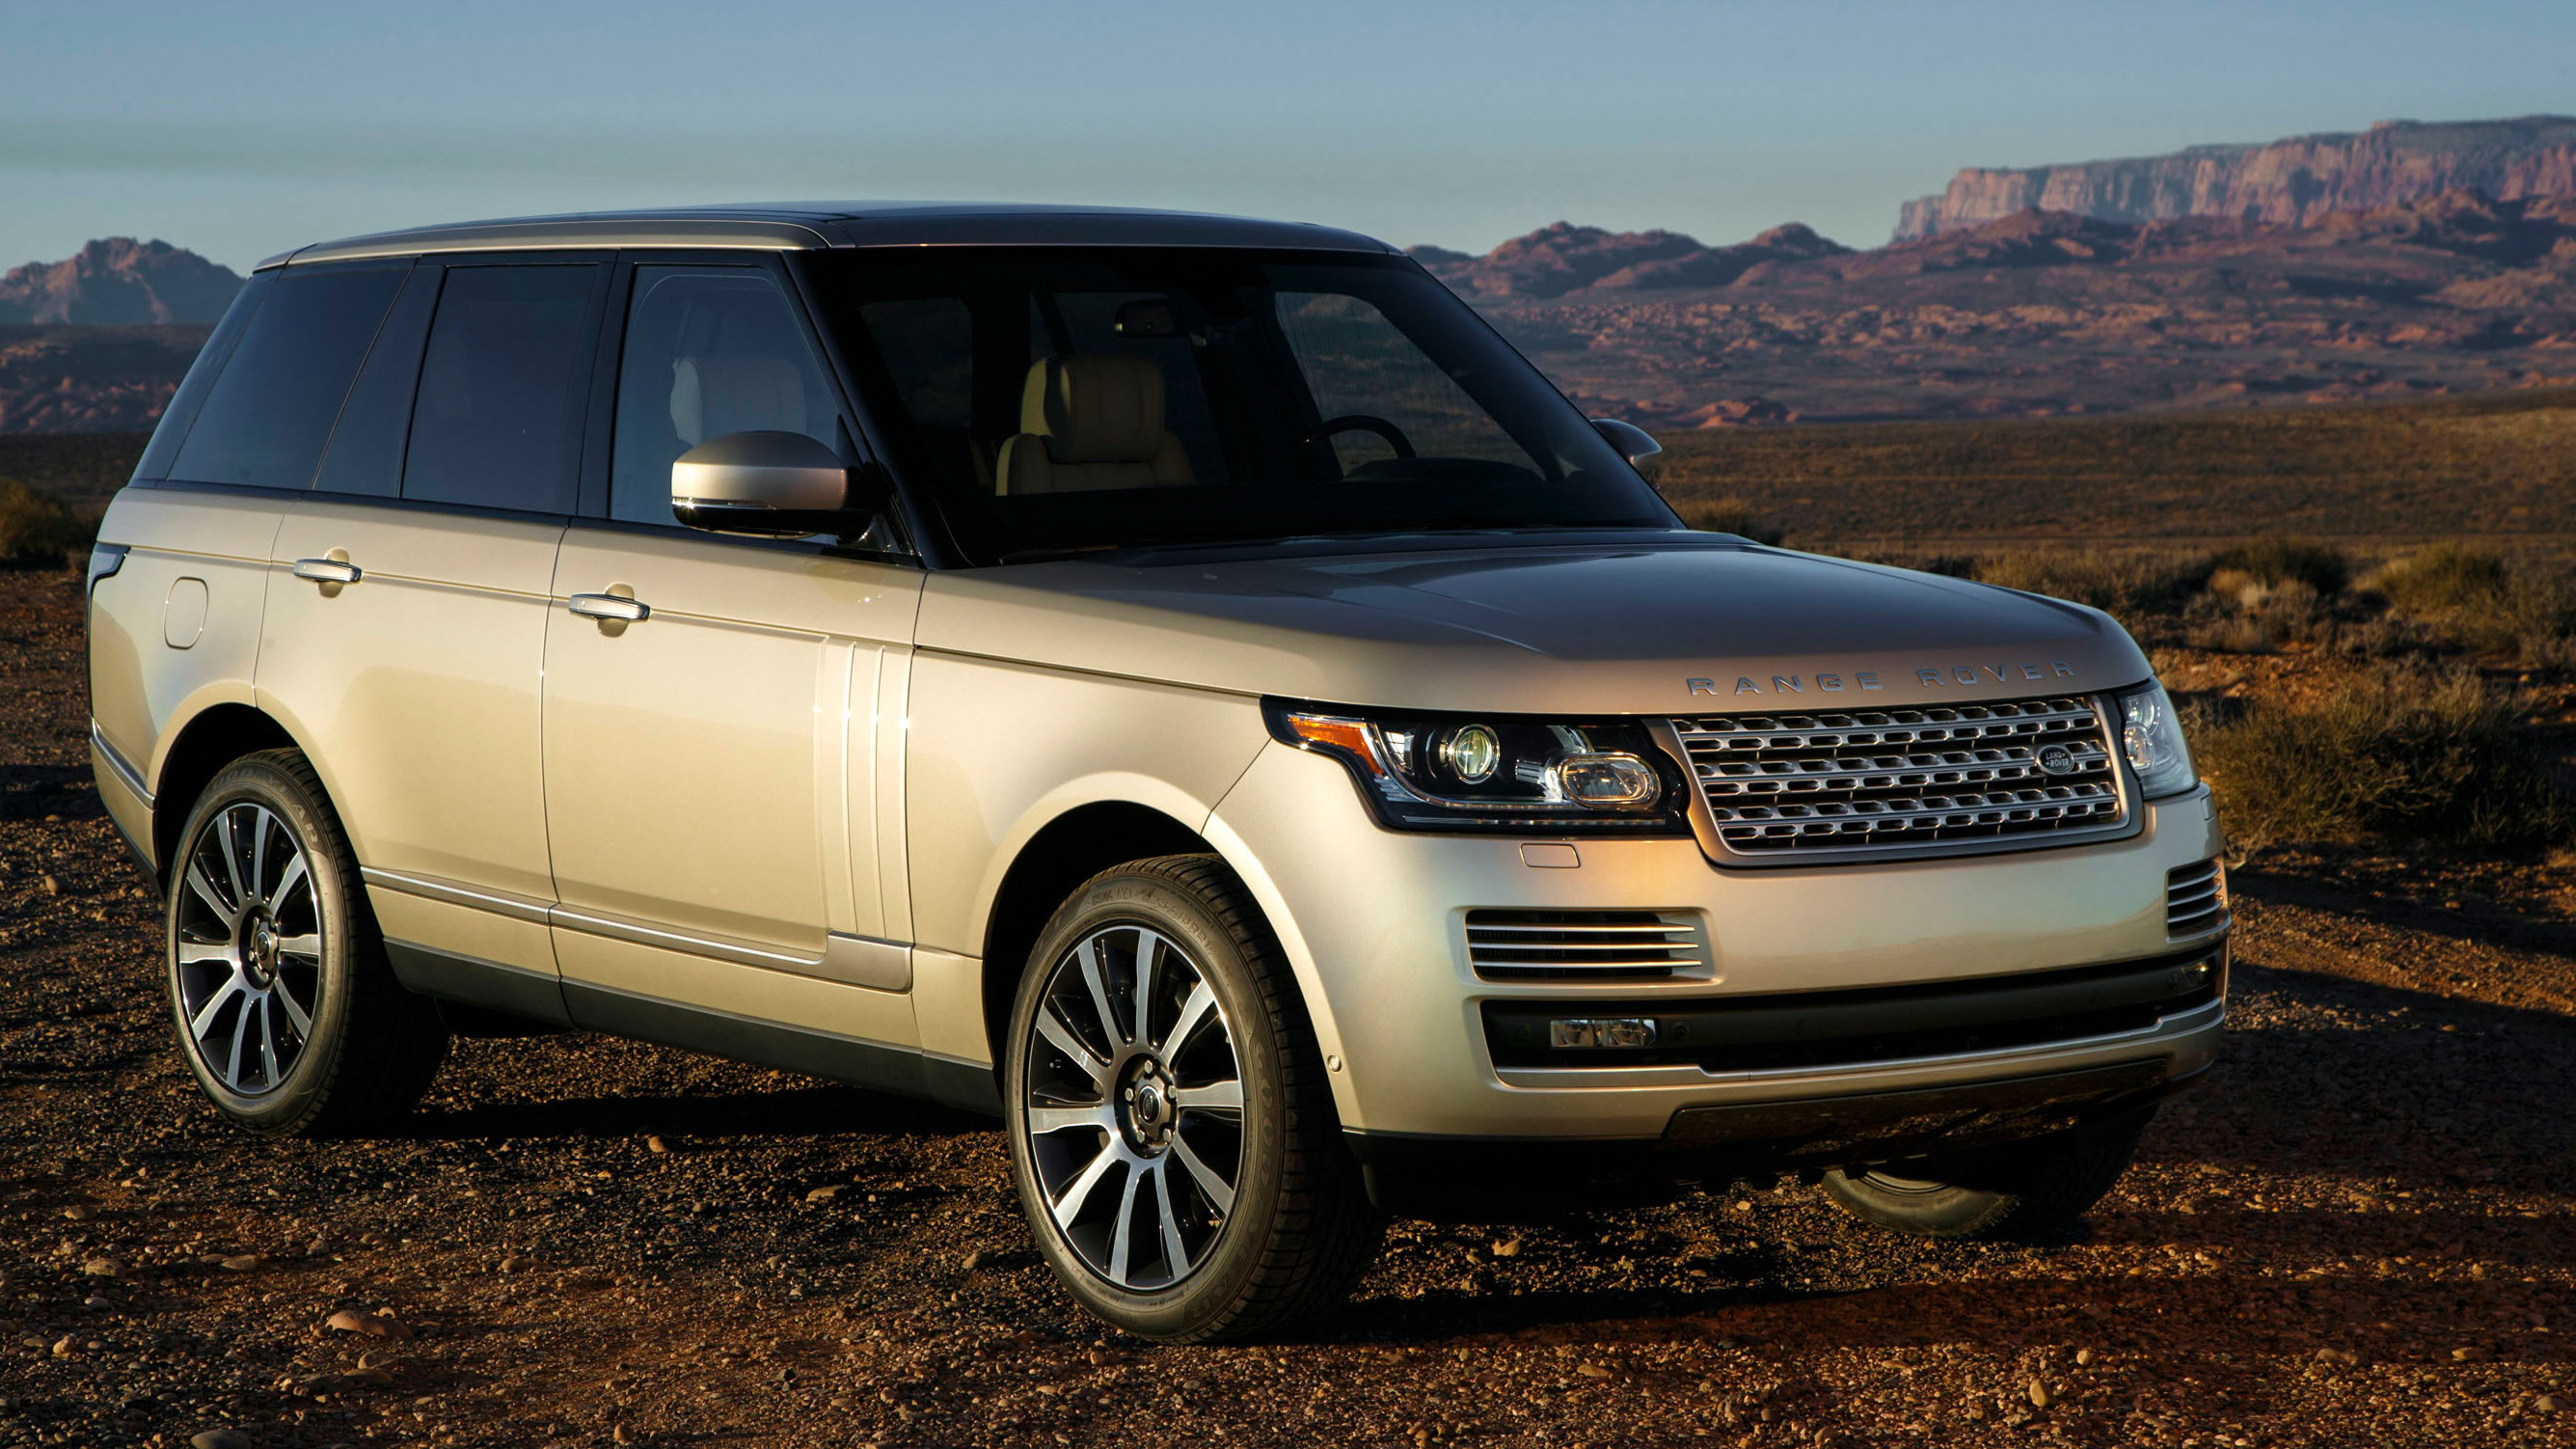 hight resolution of land rover recalls 65 000 vehicles over unlatching doors